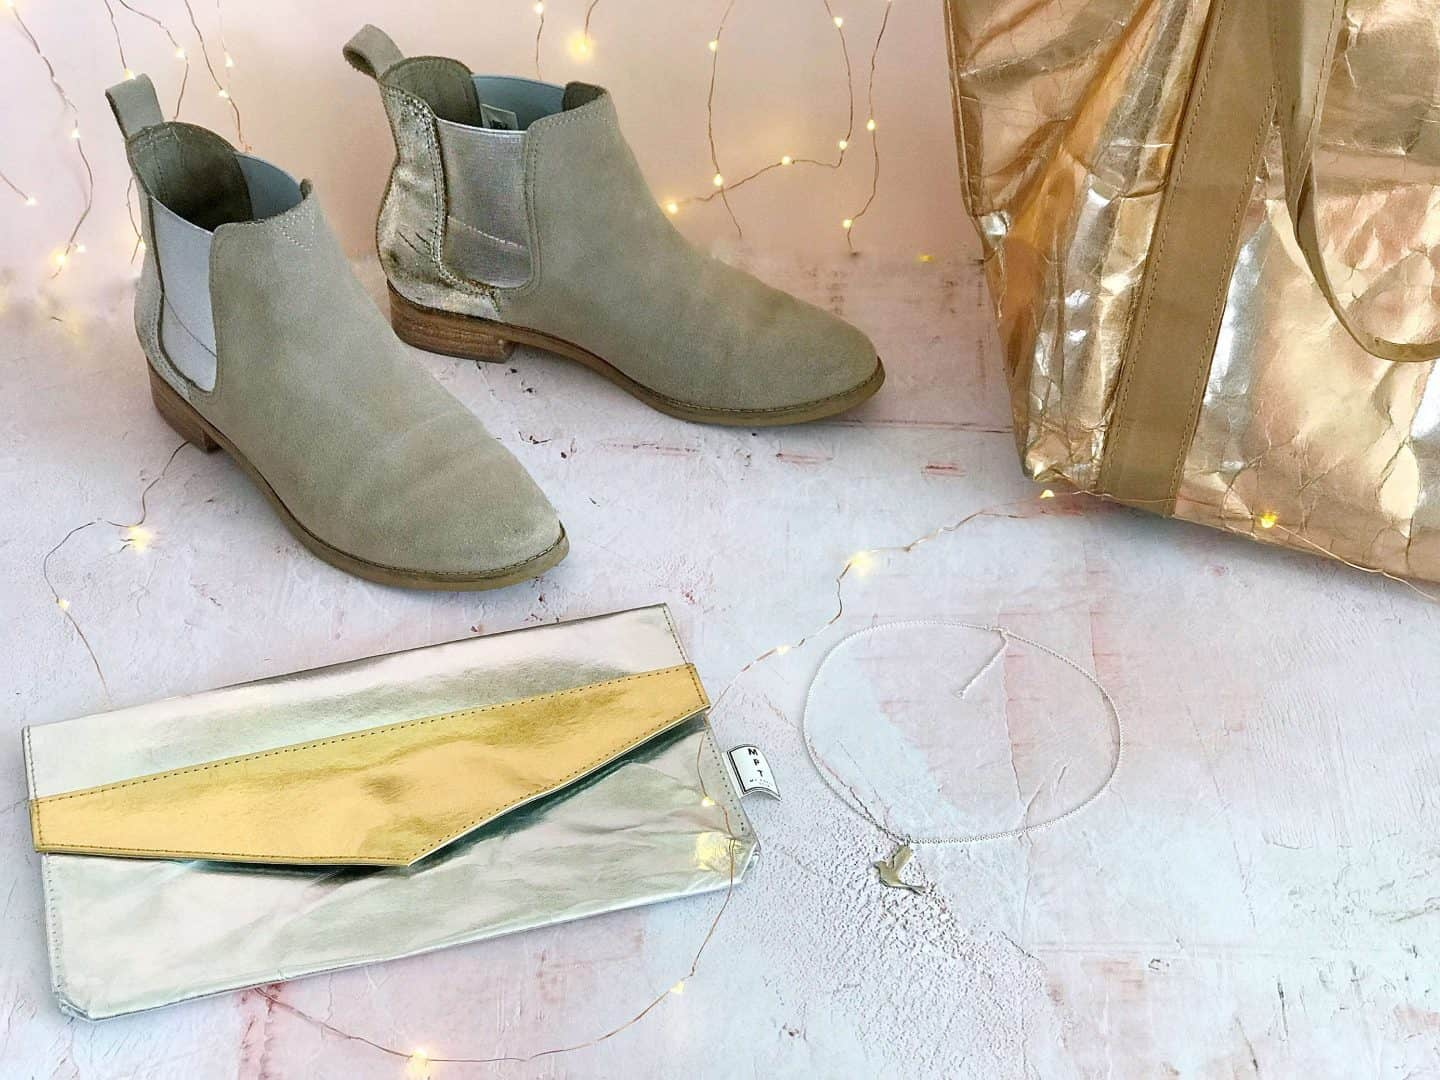 Metallic Ethical Gifts for Her